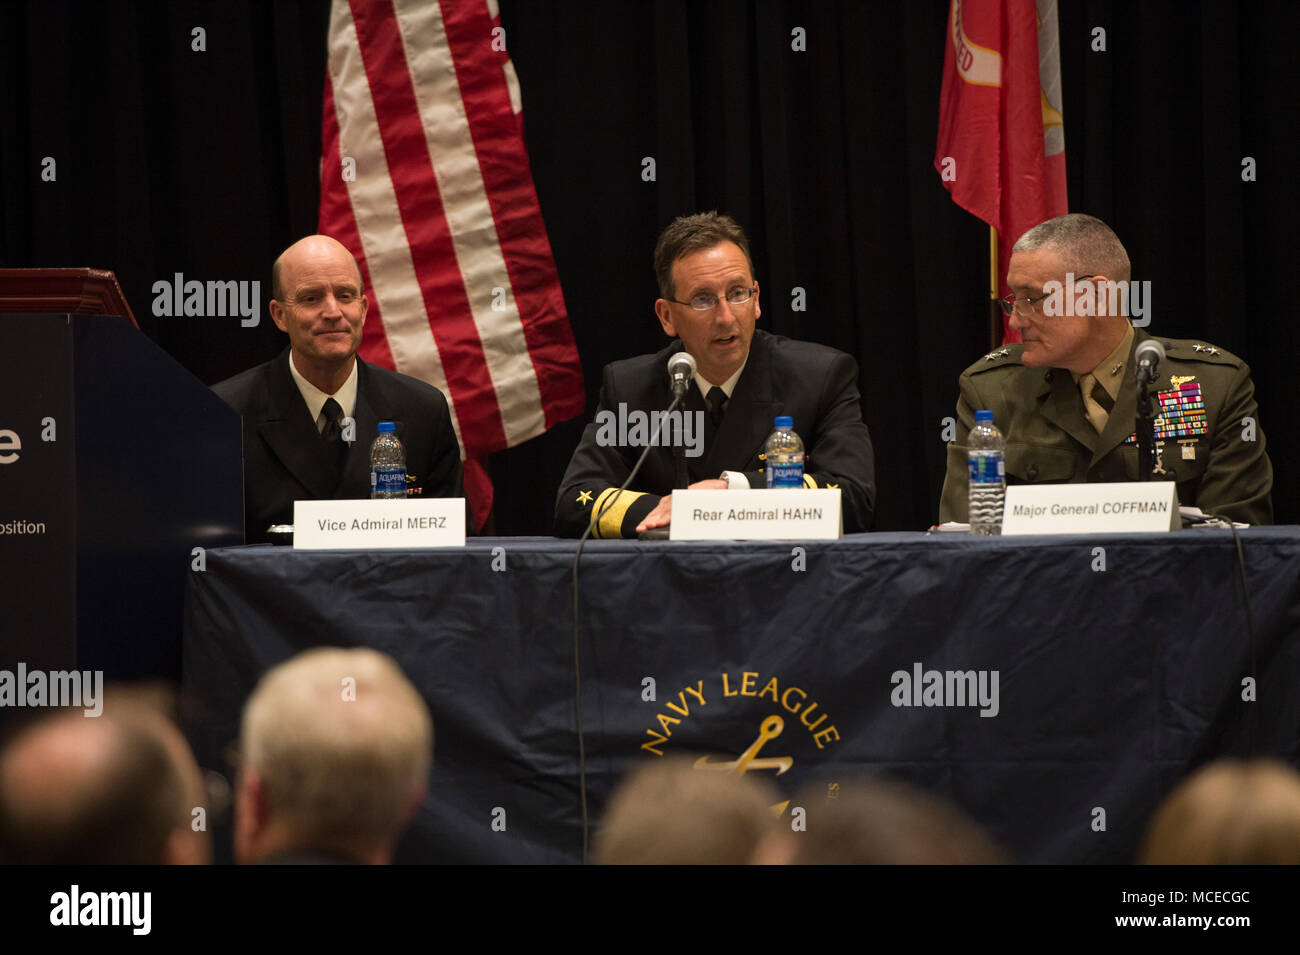 https://c8.alamy.com/comp/MCECGC/180410-n-ex237-001-national-harbor-md-april-10-2018-rear-adm-david-j-hahn-chief-of-naval-research-addresses-attendees-during-a-cross-domain-integration-panel-at-the-2018-sea-air-space-exposition-the-annual-event-hosted-by-the-navy-league-of-the-united-states-and-brings-together-the-us-defense-industrial-base-private-sector-us-companies-and-key-military-decision-makers-for-an-innovative-educational-and-professional-maritime-based-event-us-navy-photo-by-mass-communication-specialist-2nd-class-lauren-k-jenningsreleased-MCECGC.jpg